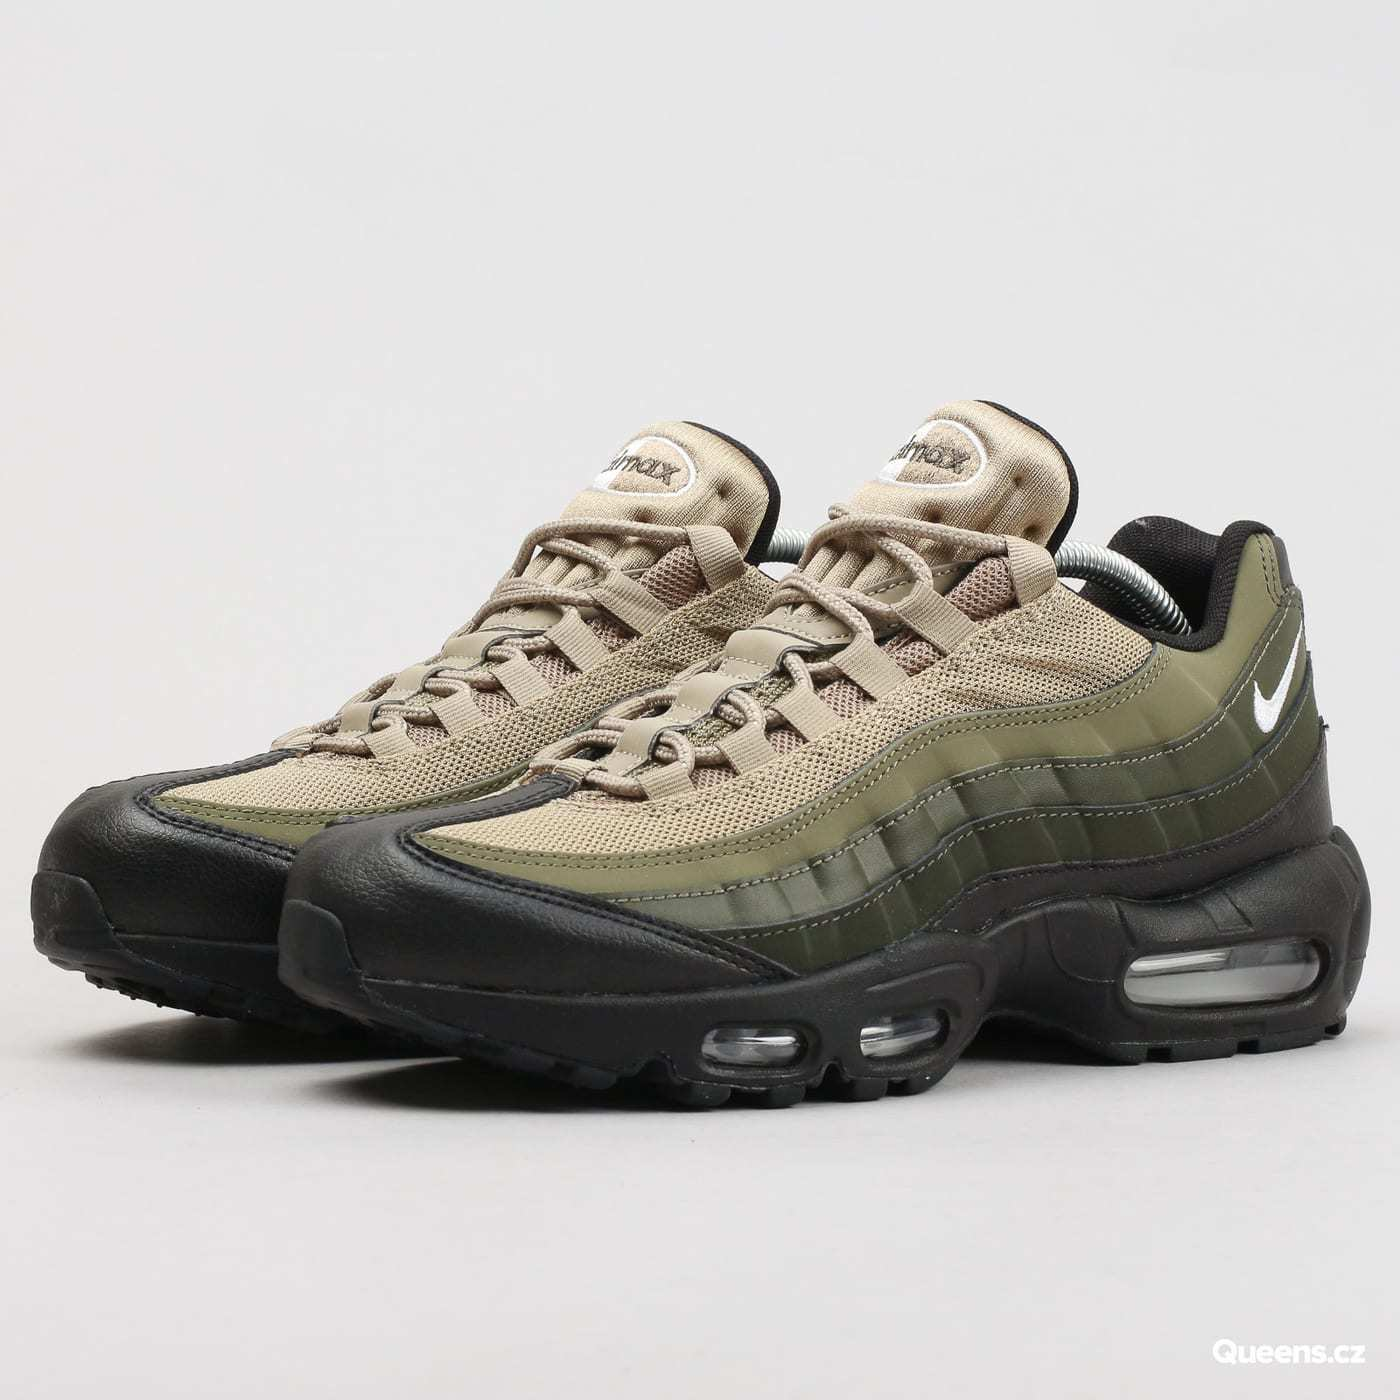 Nike Air Max 95 Premium Sneakers New, Cargo Khaki Green 749766-024 SKU AA sz 12